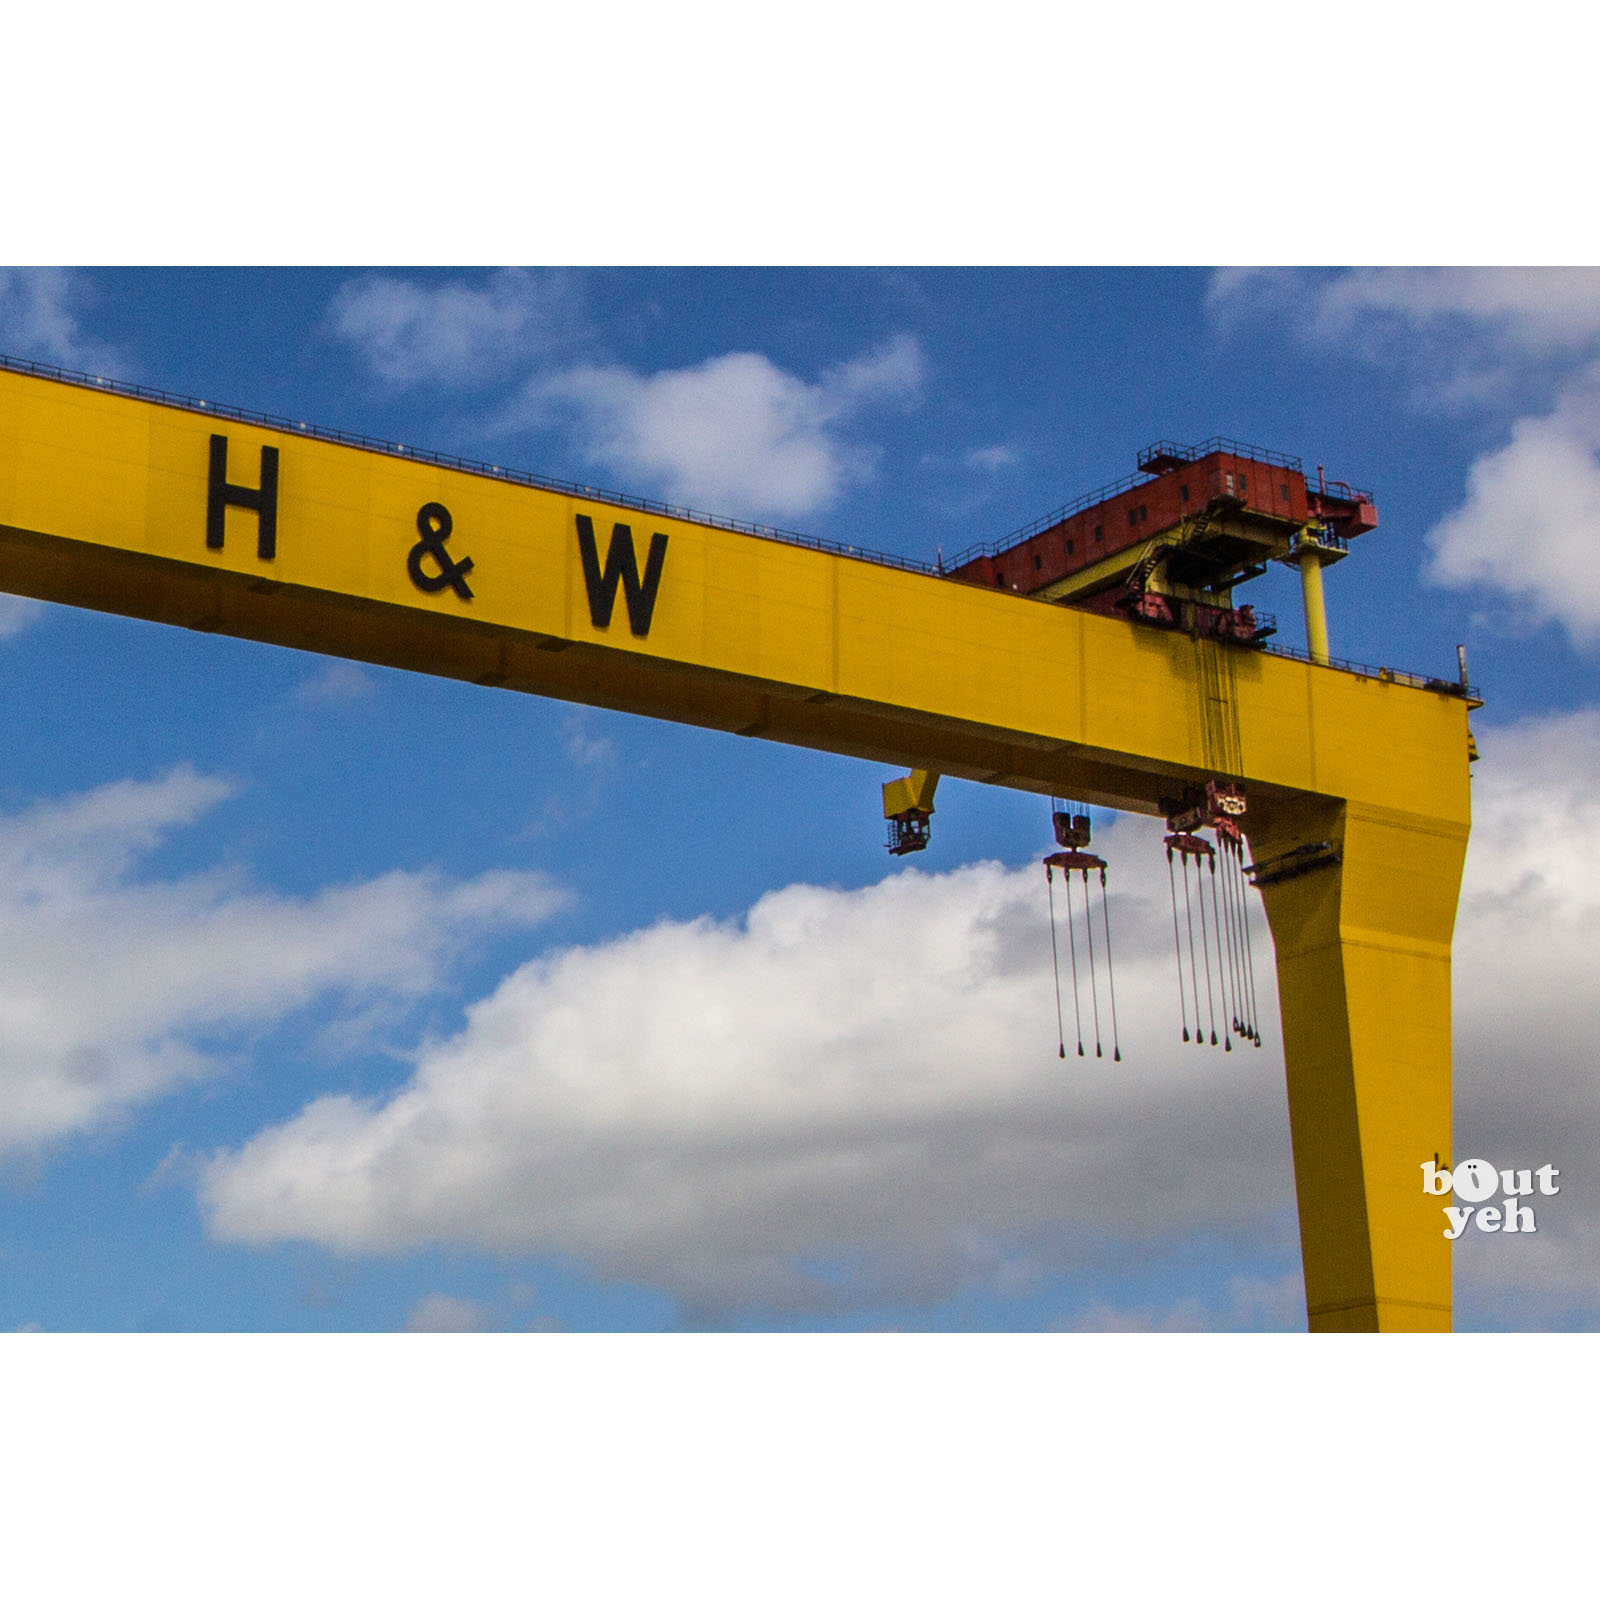 Image - Featured photographer, Justin McLean, photograph of Harland and Wolff Crane, Belfast.